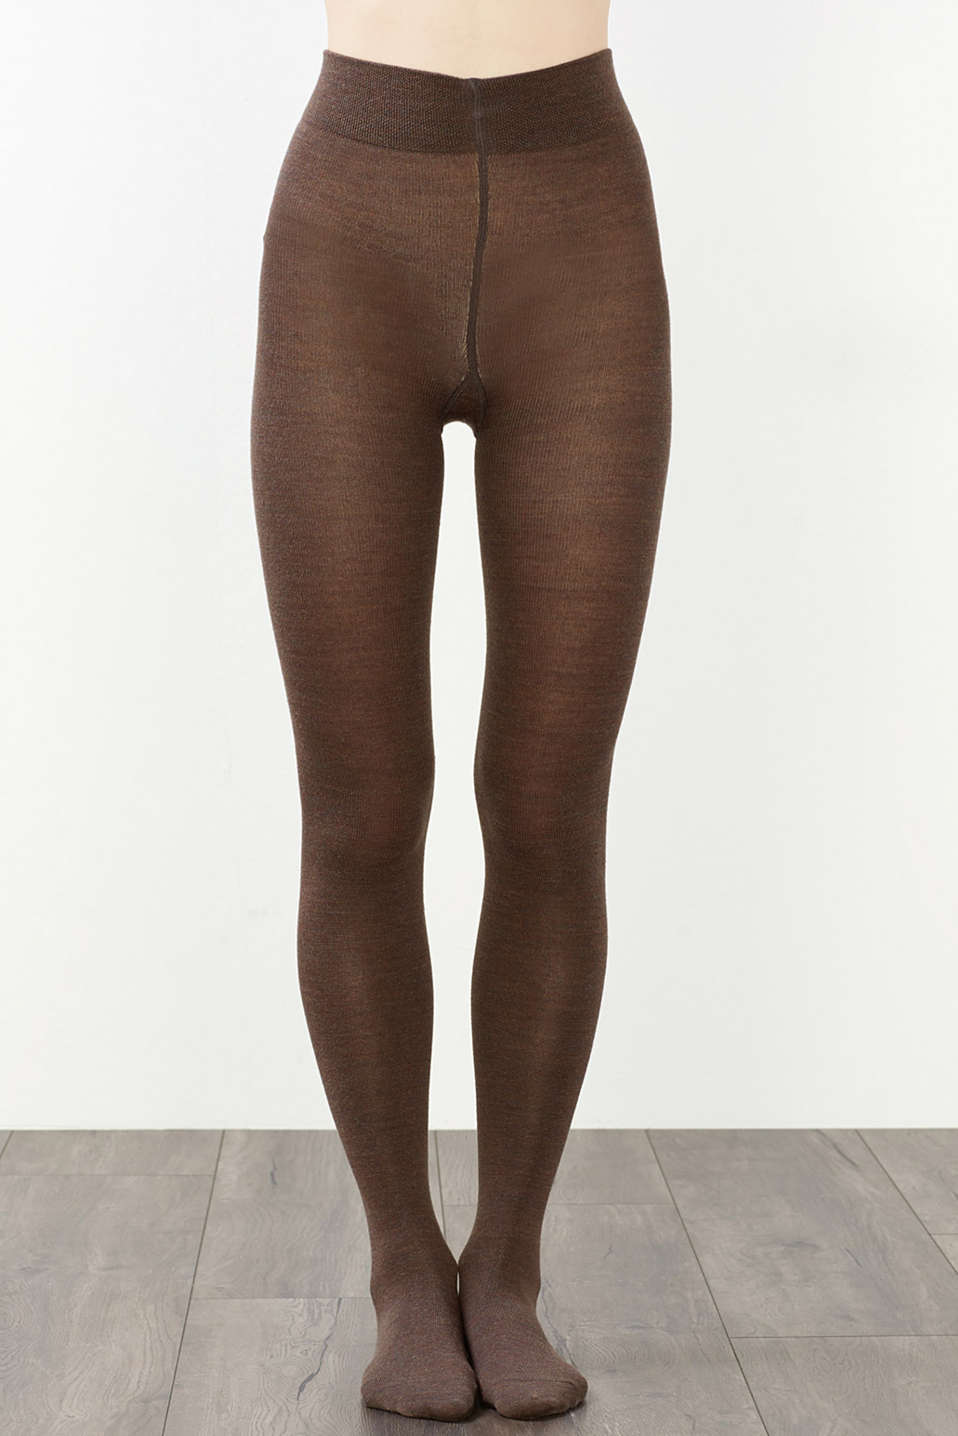 Esprit - Tights made of soft knit yarn with wool